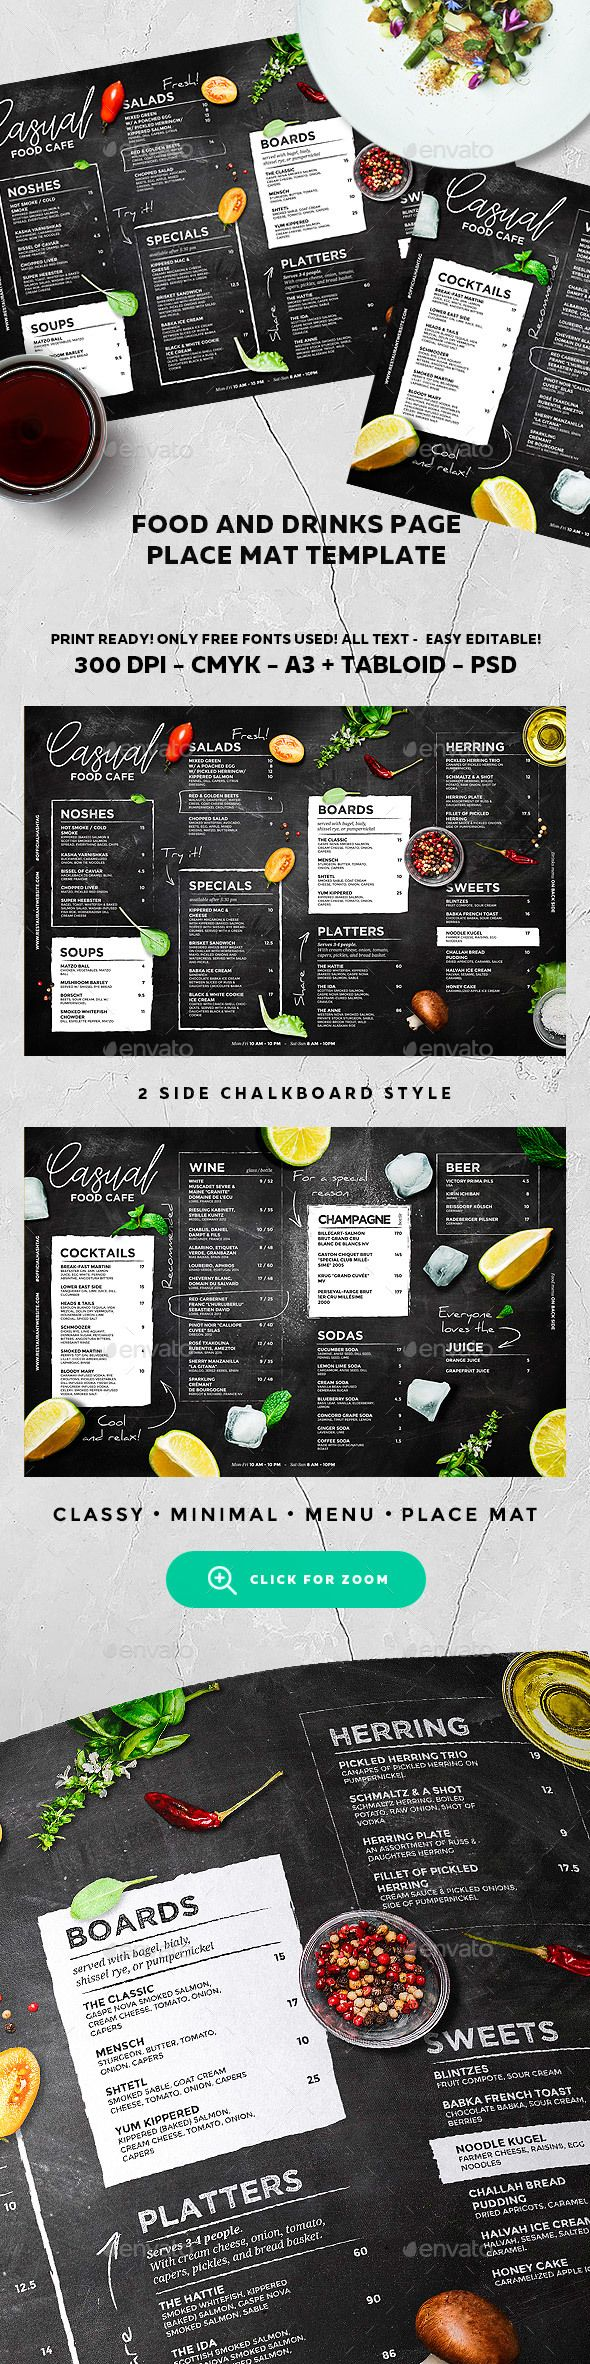 538 best Menu Inspiration images on Pinterest | Flyers, Food menu ...